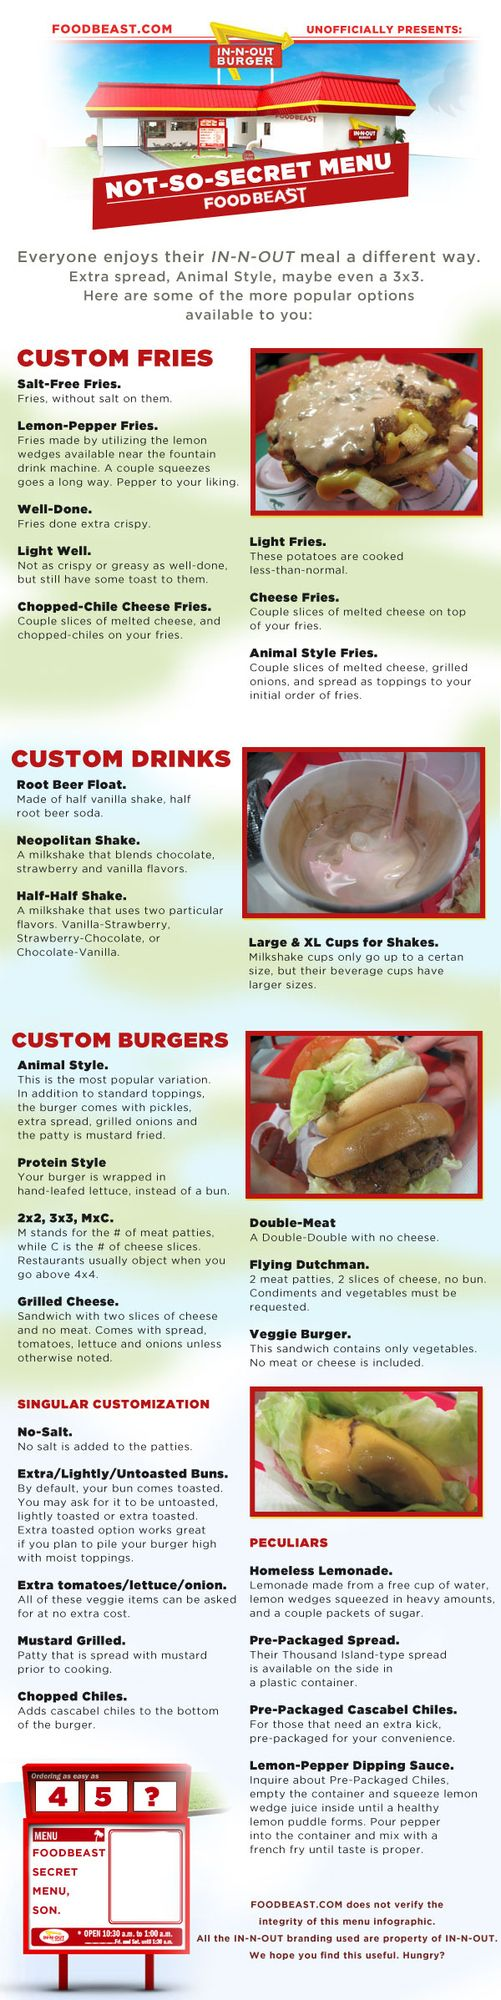 In-N-Out Secret Menu Infographic